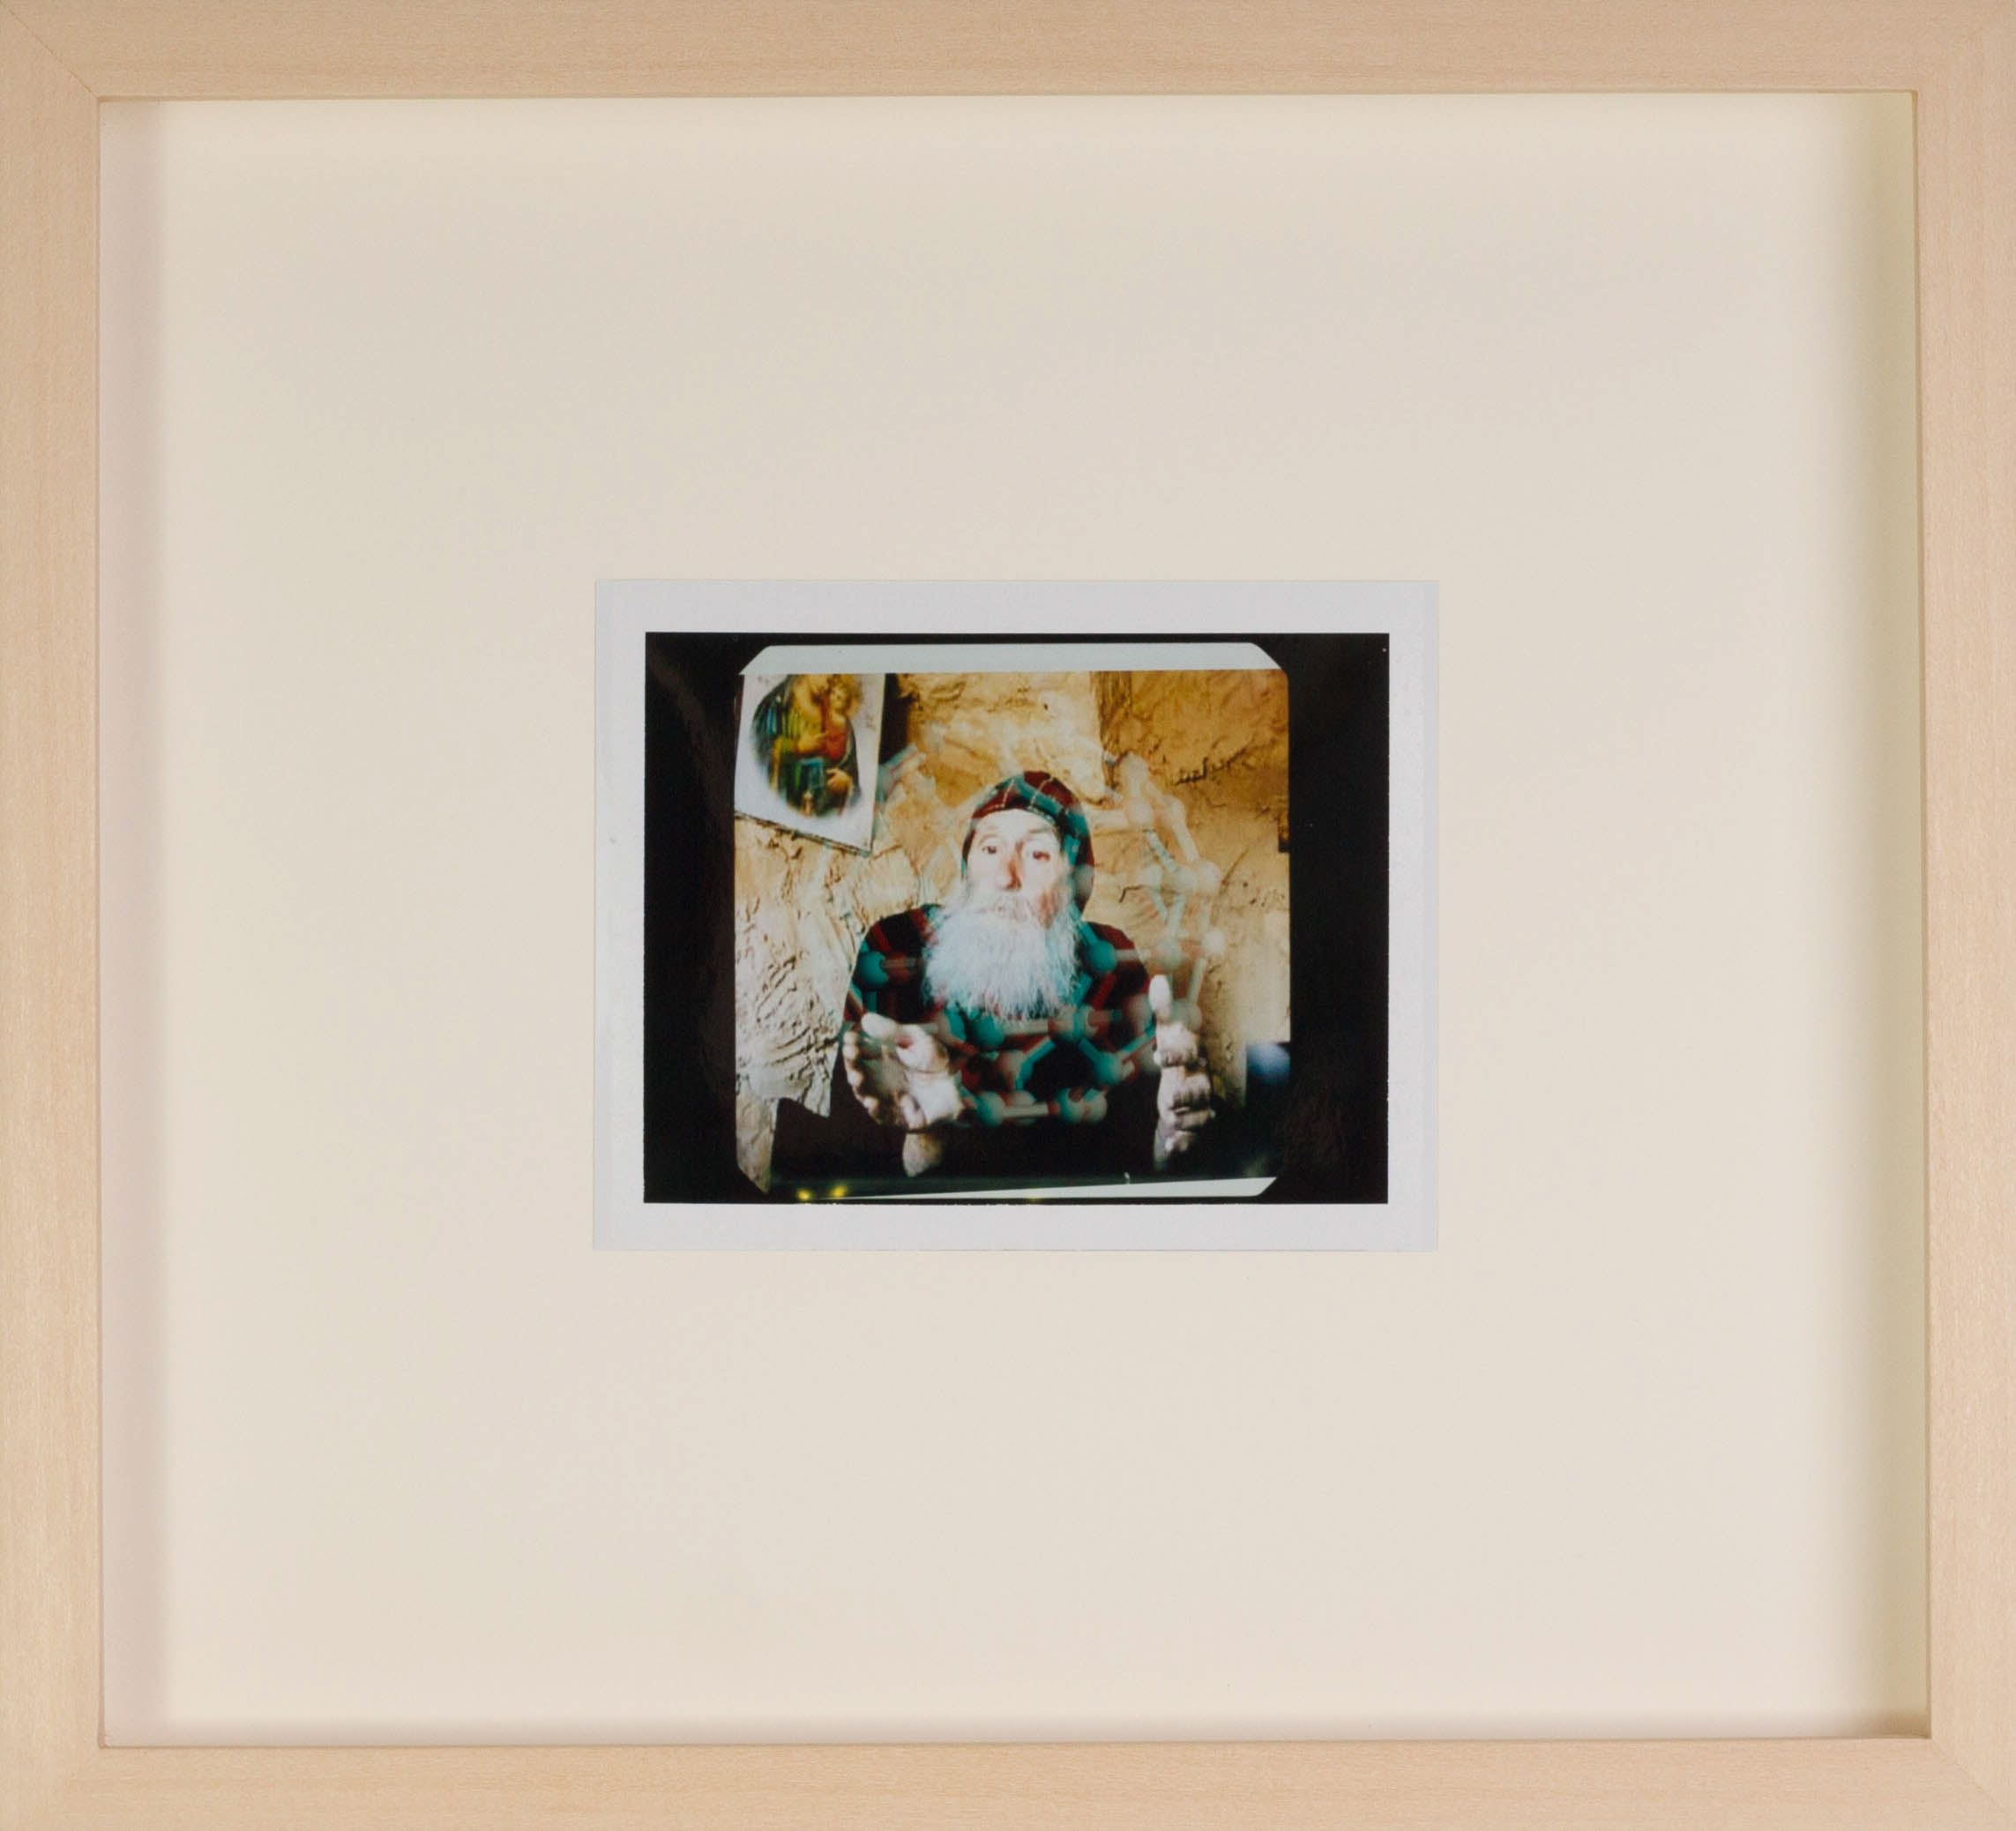 Tommy Hartung    A Good Business Model , 2016  Polaroid  Framed Dimensions: 9.25 x 10.125in. (23.5 x 25.7cm)